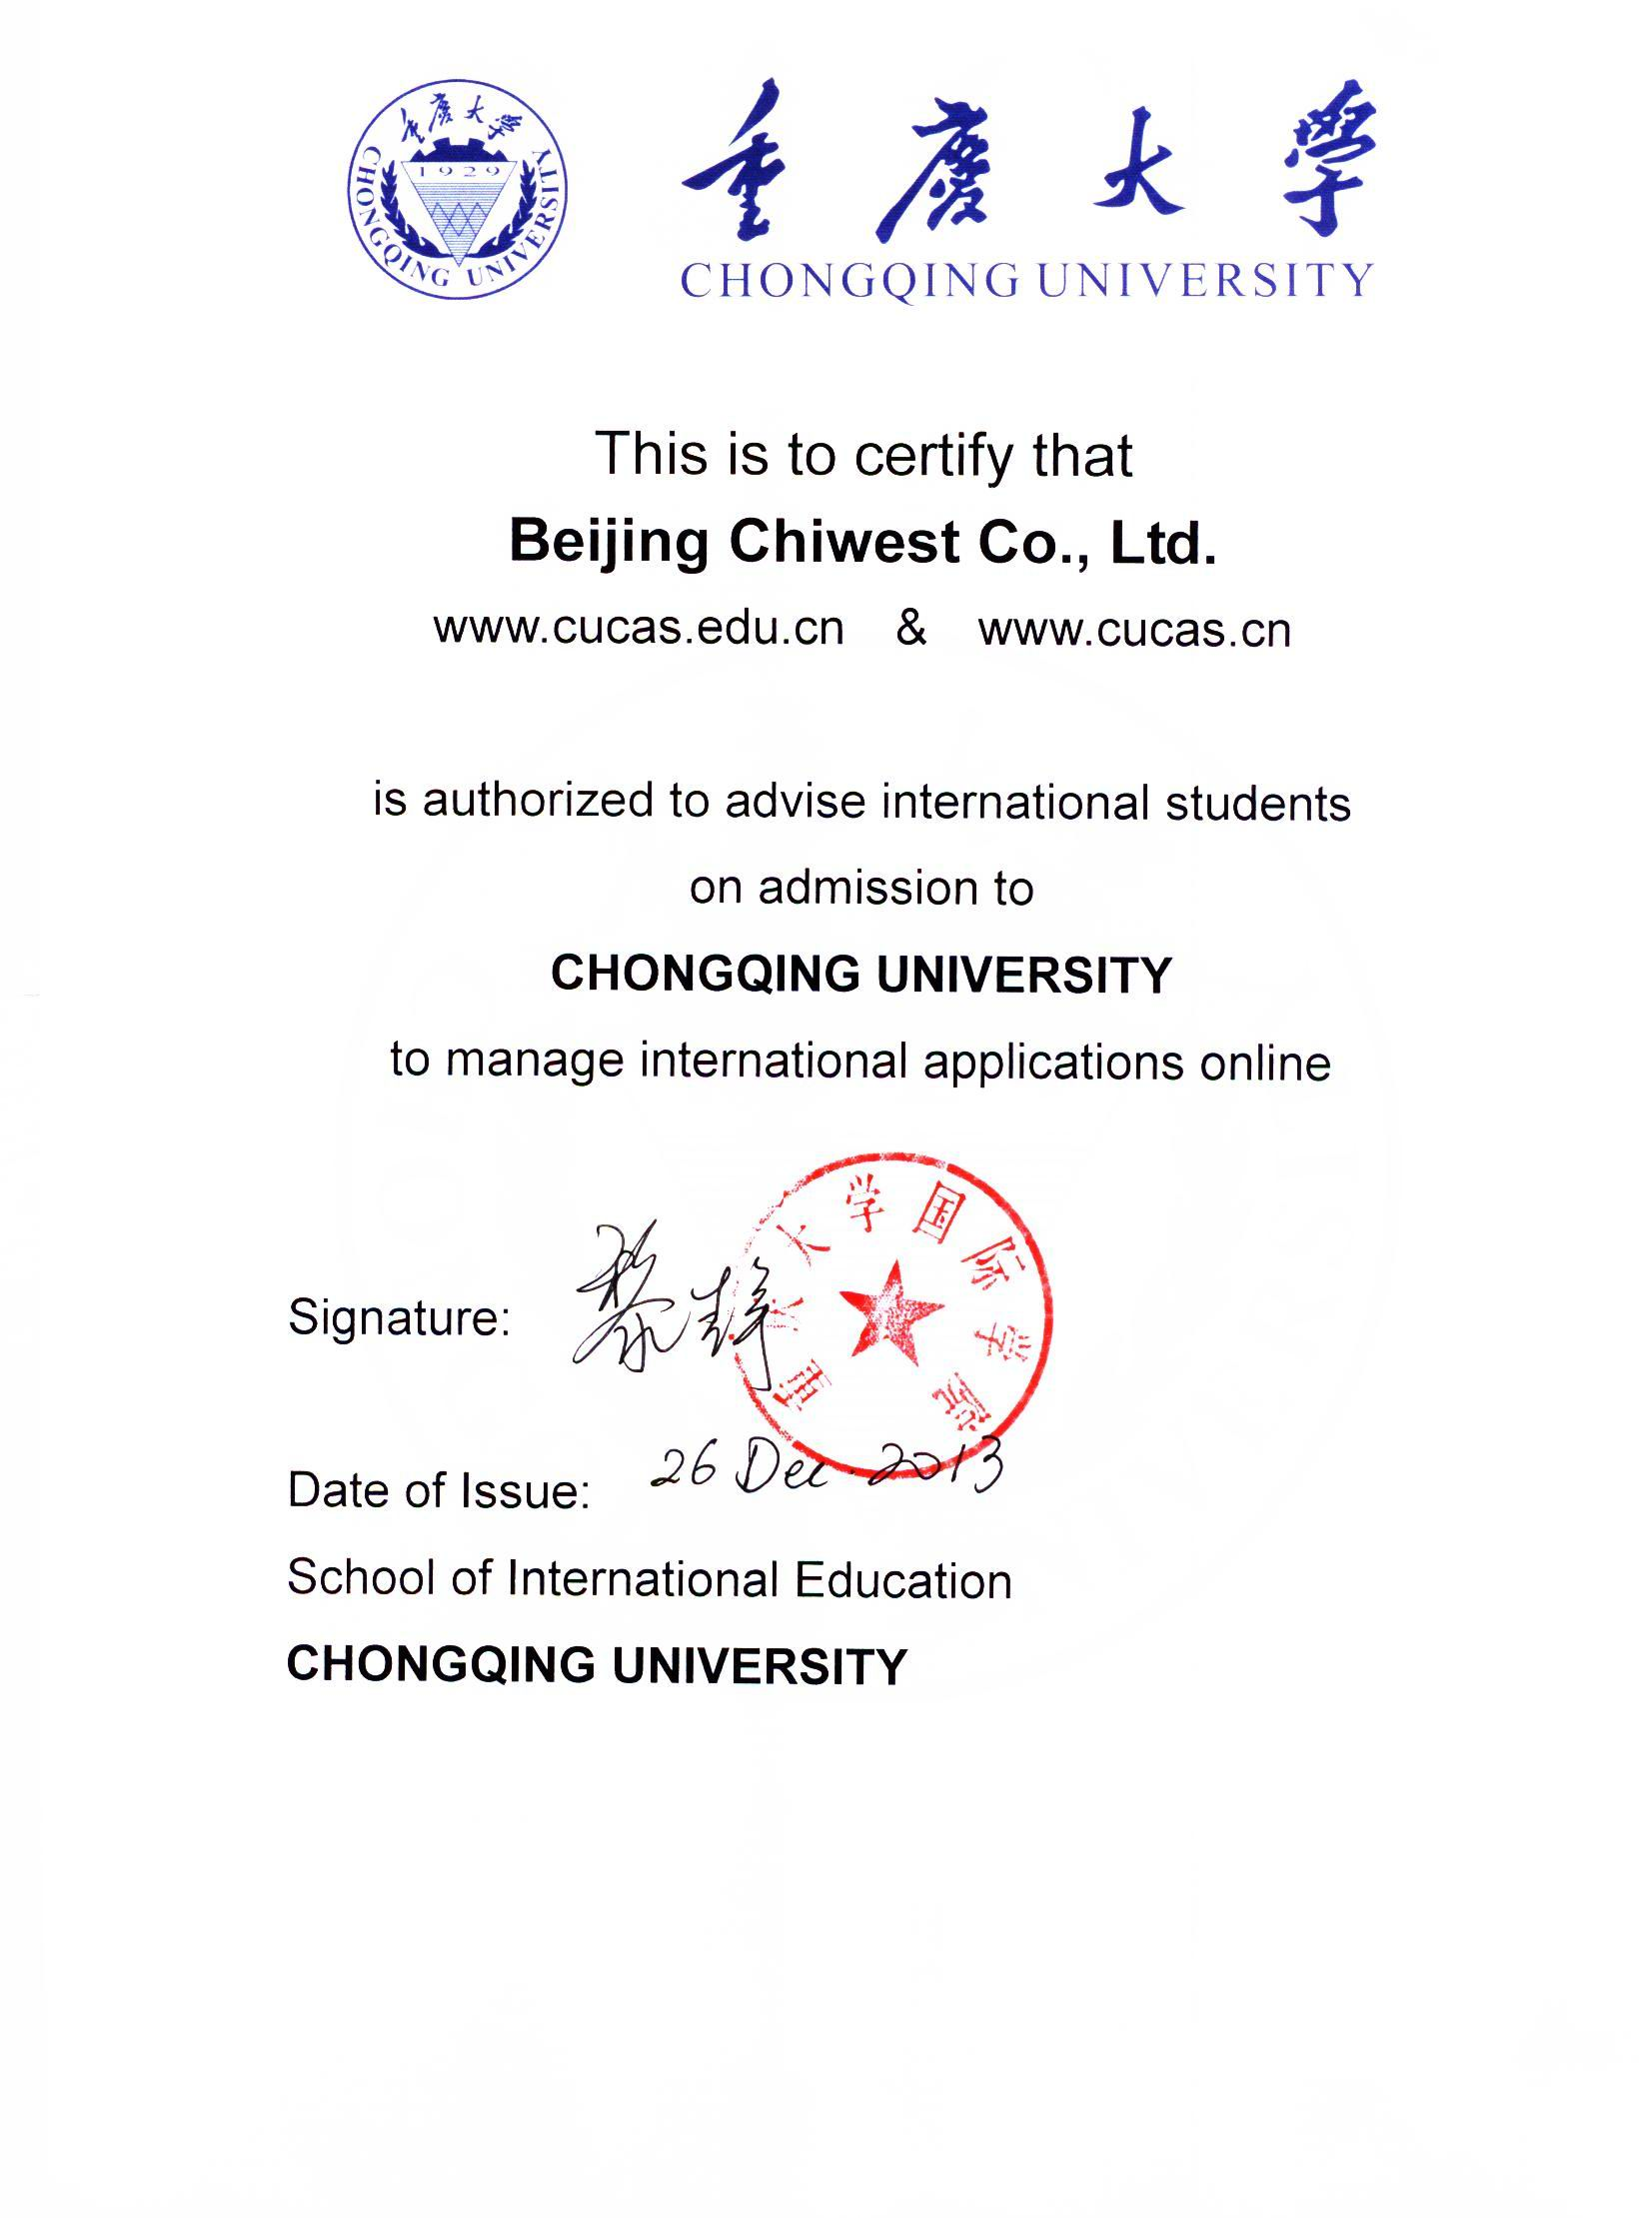 Chongqing University Authorization Letter  Study In China  Cucas